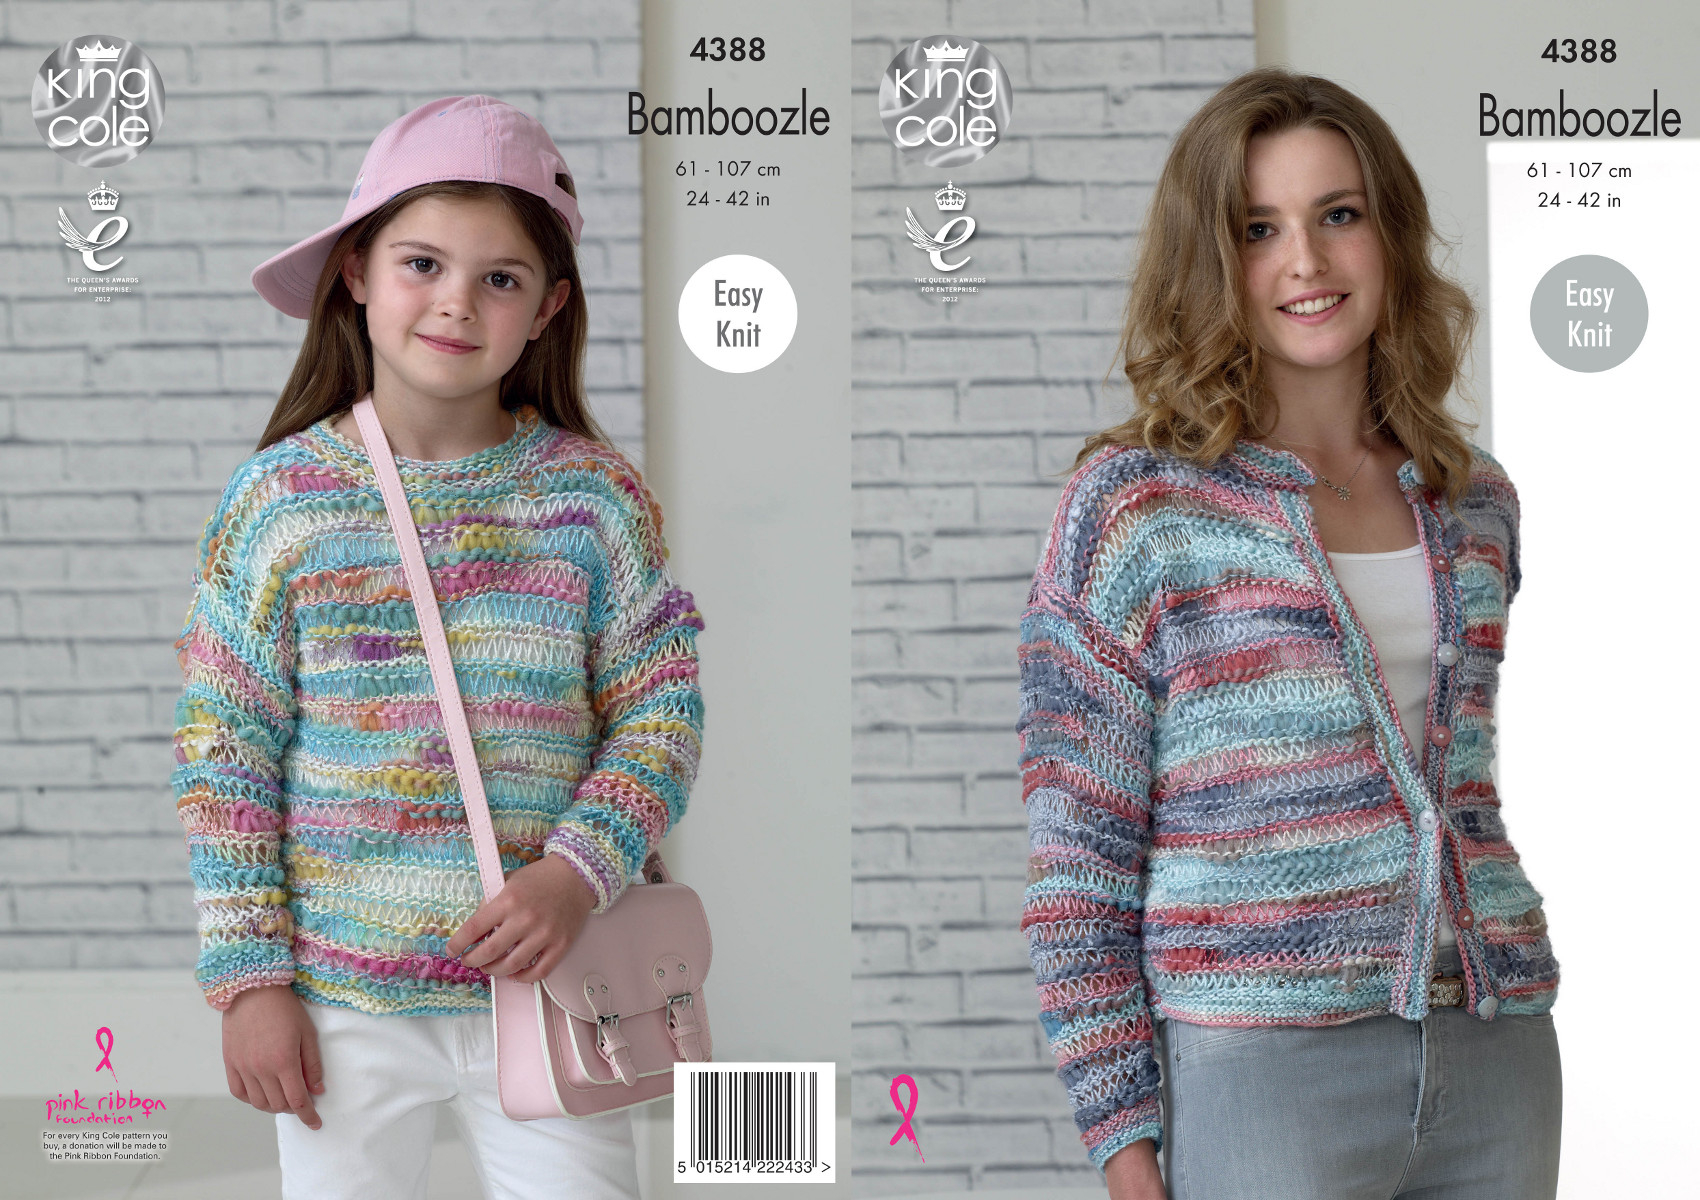 Knitting Patterns For Women Details About King Cole Bamboozle Knitting Pattern Women Girls Easy Knit Sweater Cardigan 4388